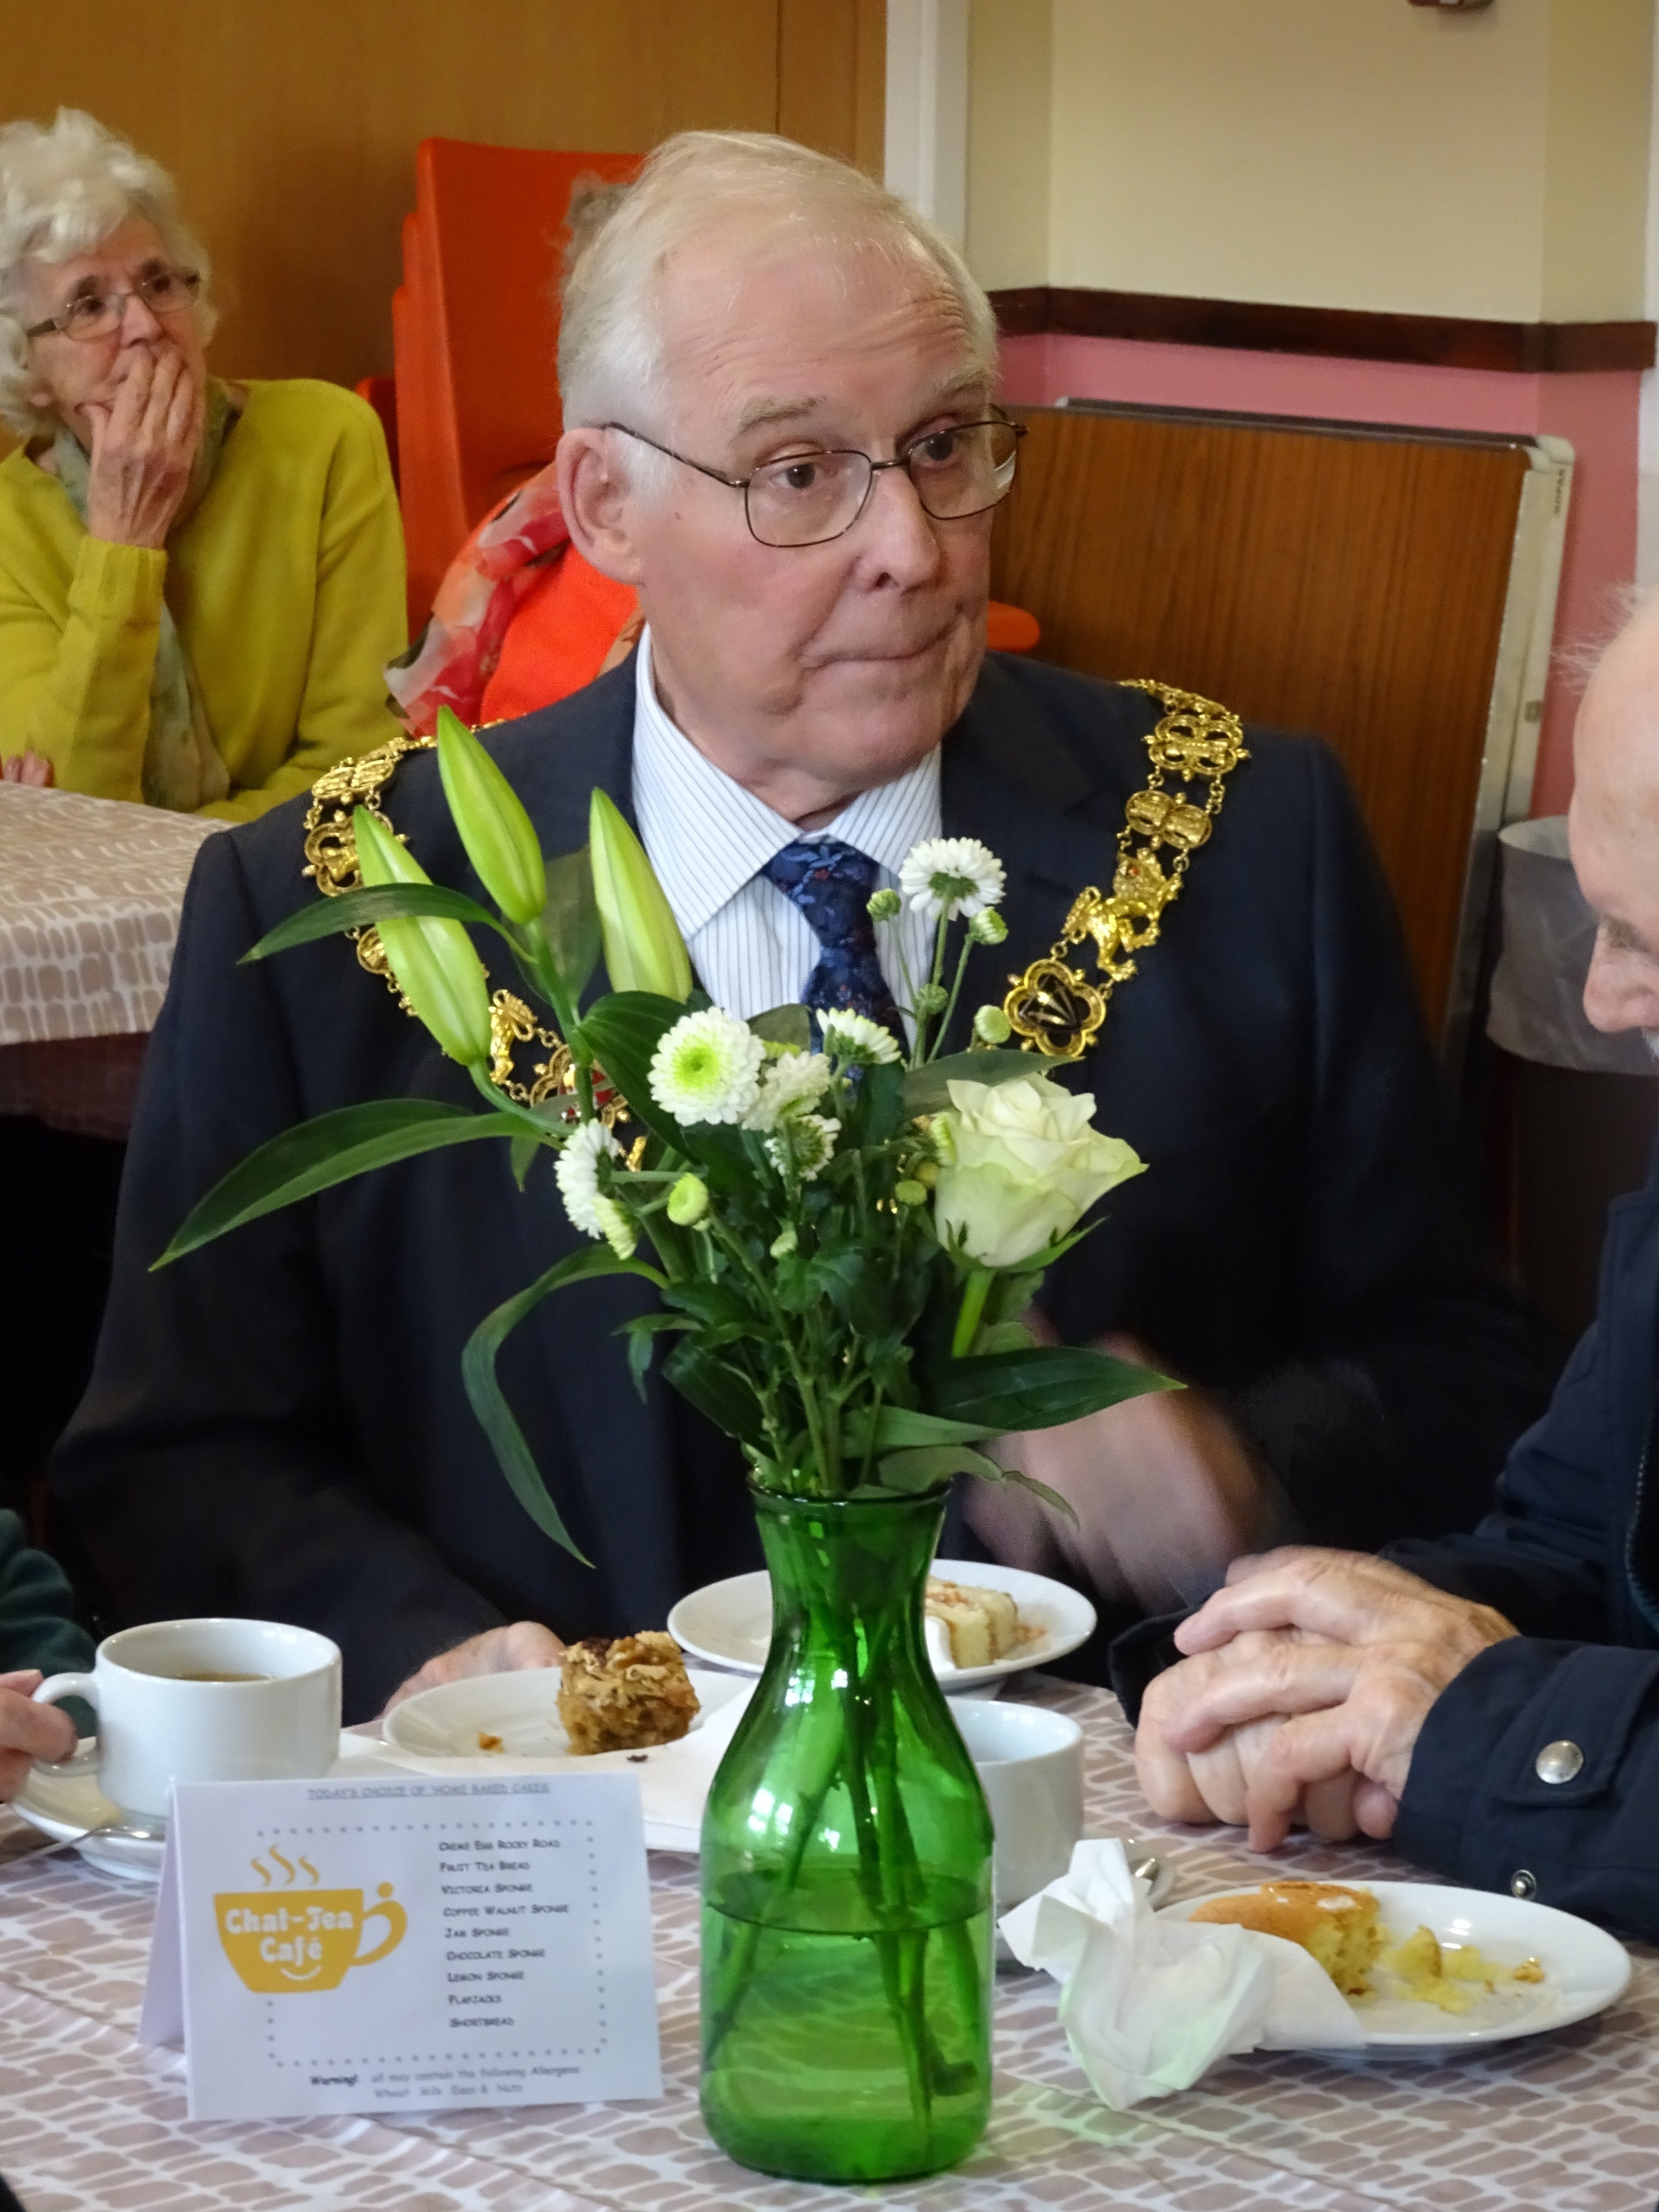 Winchester Mayor at the Chat-Tea Café